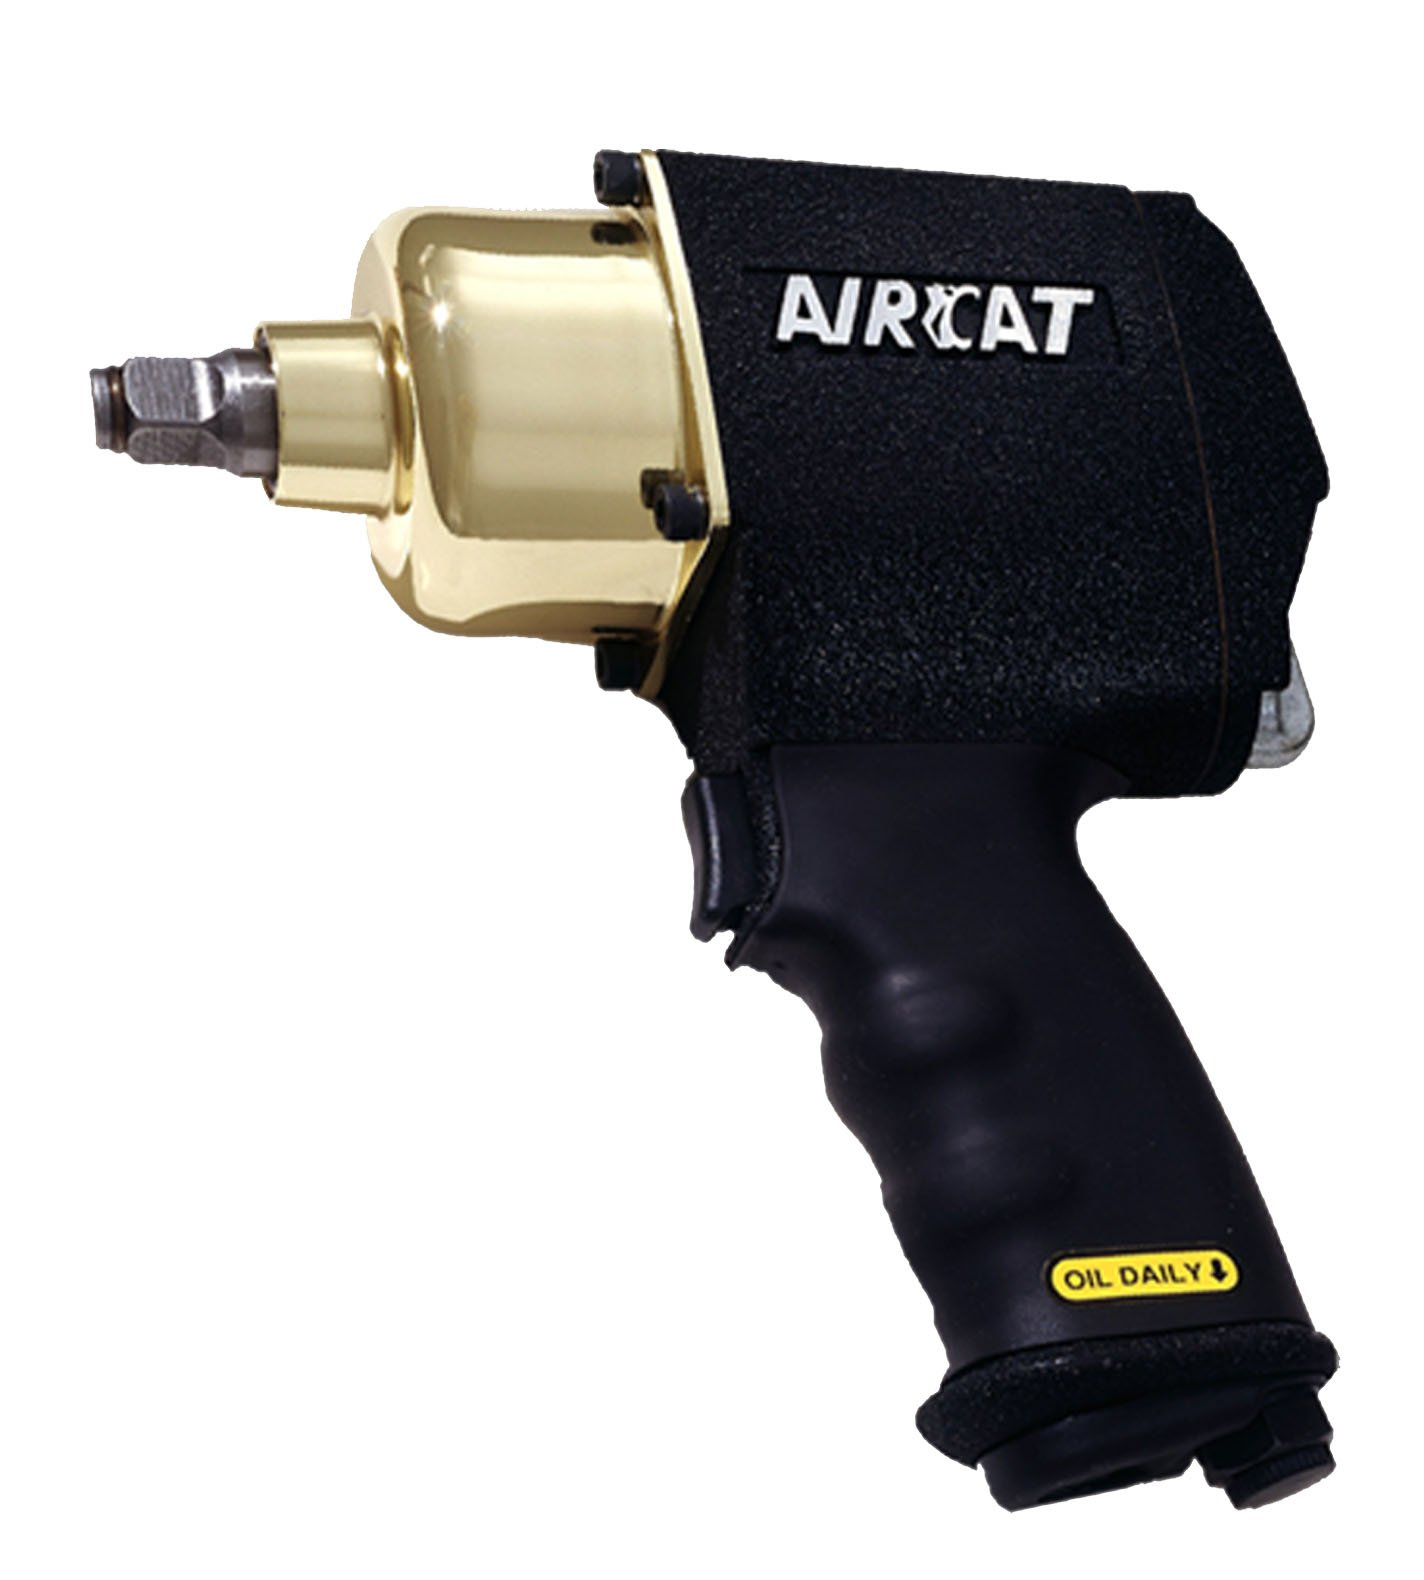 AIRCAT 1404-BG Original 1/2-Inch Black Brushed Aluminum Air Impact Wrench With Twin Hammer Mechanism by AirCat (Image #1)